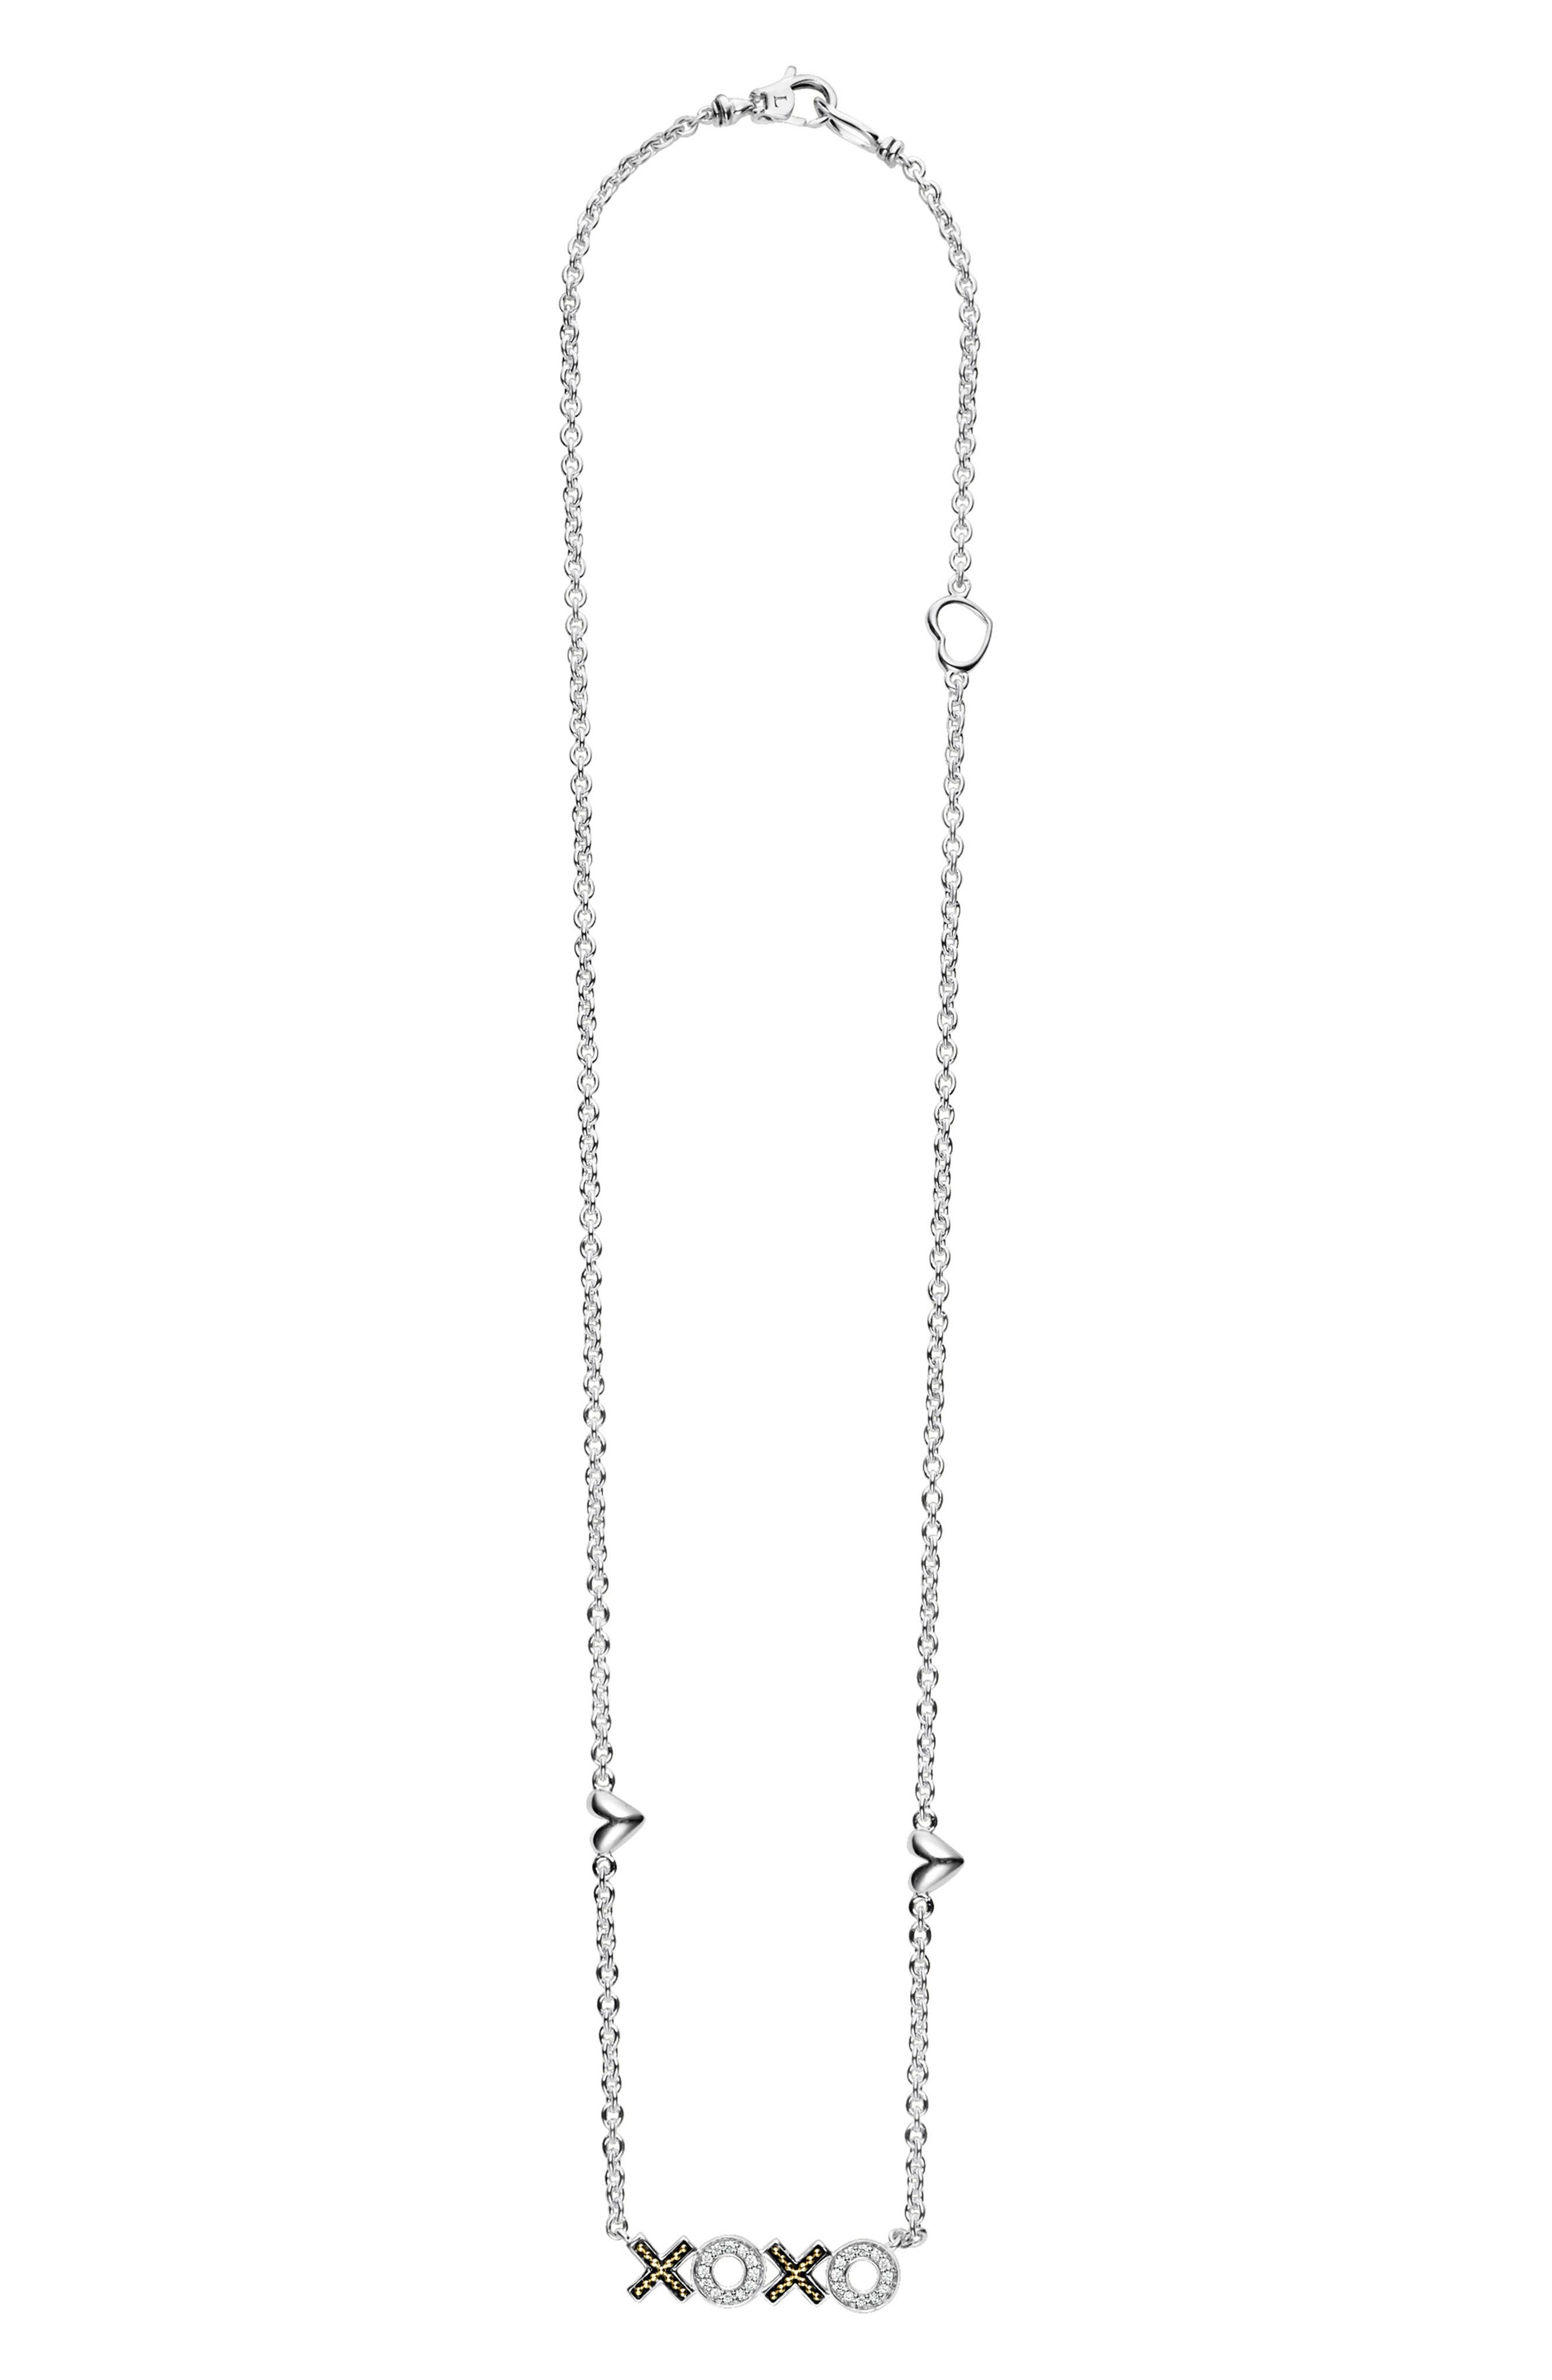 Beloved Diamond XOXO Chain Necklace,                             Alternate thumbnail 3, color,                             SILVER/ DIAMOND